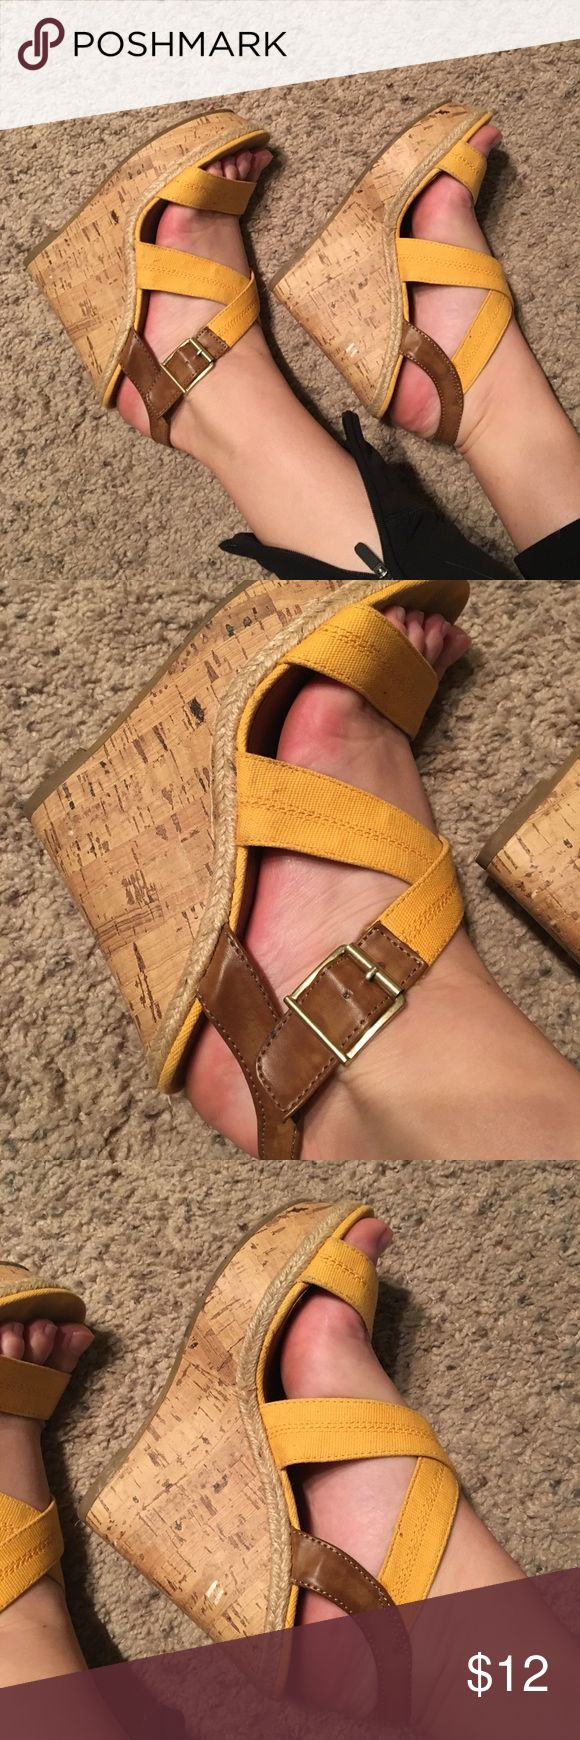 ☀️ Yellow & Leather Cork Wedges Bundle & I'll send you a private discount ASAP! 😘Beautiful yellow wedges - buckle straps are adjustable for feet as shown - normal foot stain on bottom from wear (price reflective of that) 😘 - so comfortable! - previously loved Nordstrom Shoes Wedges